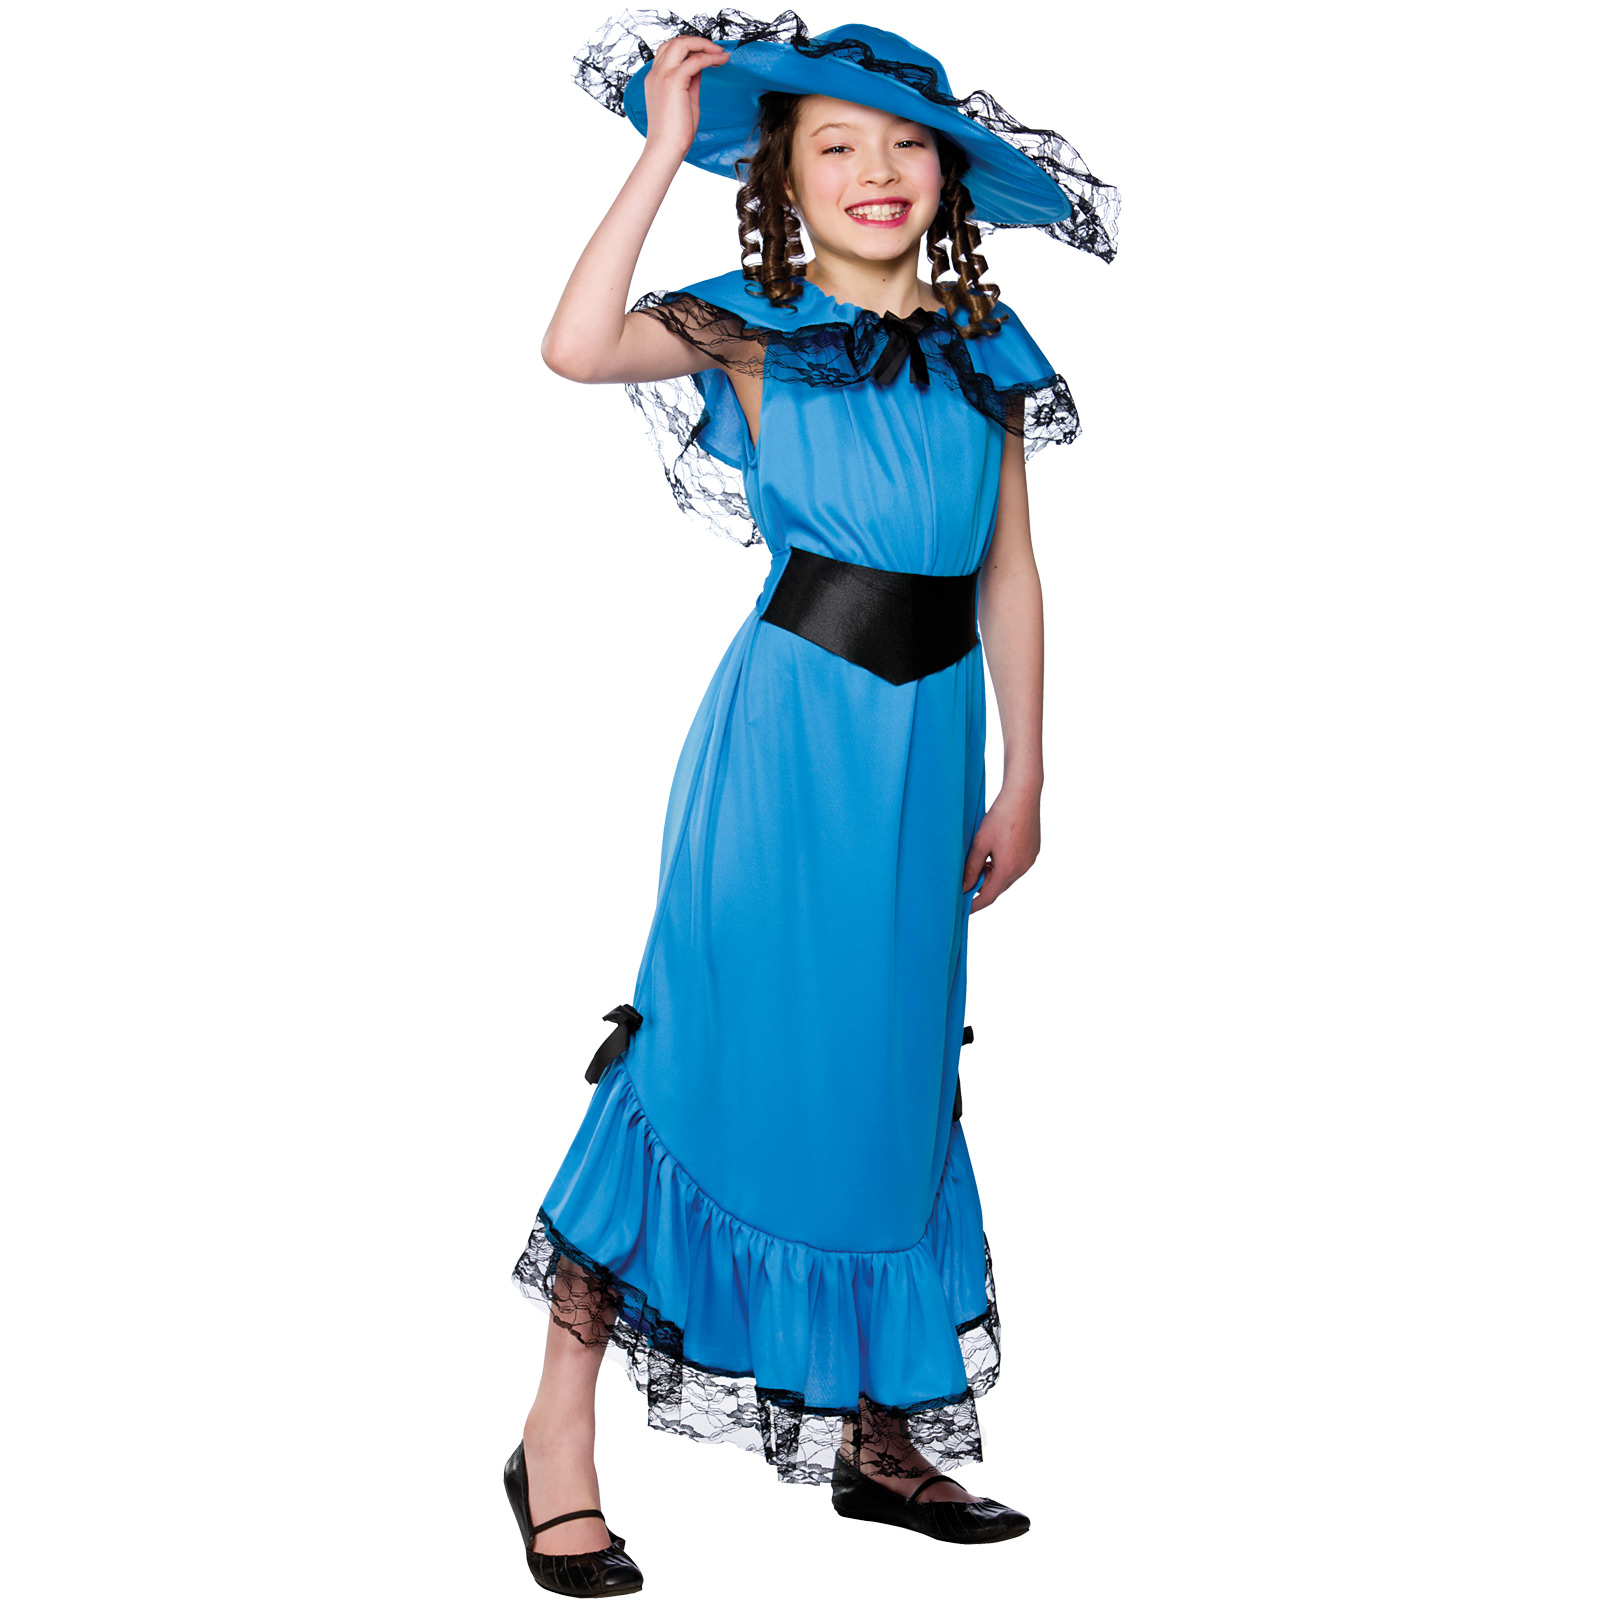 Girl Dressed as Boy Halloween Girls Blue Victorian Lady